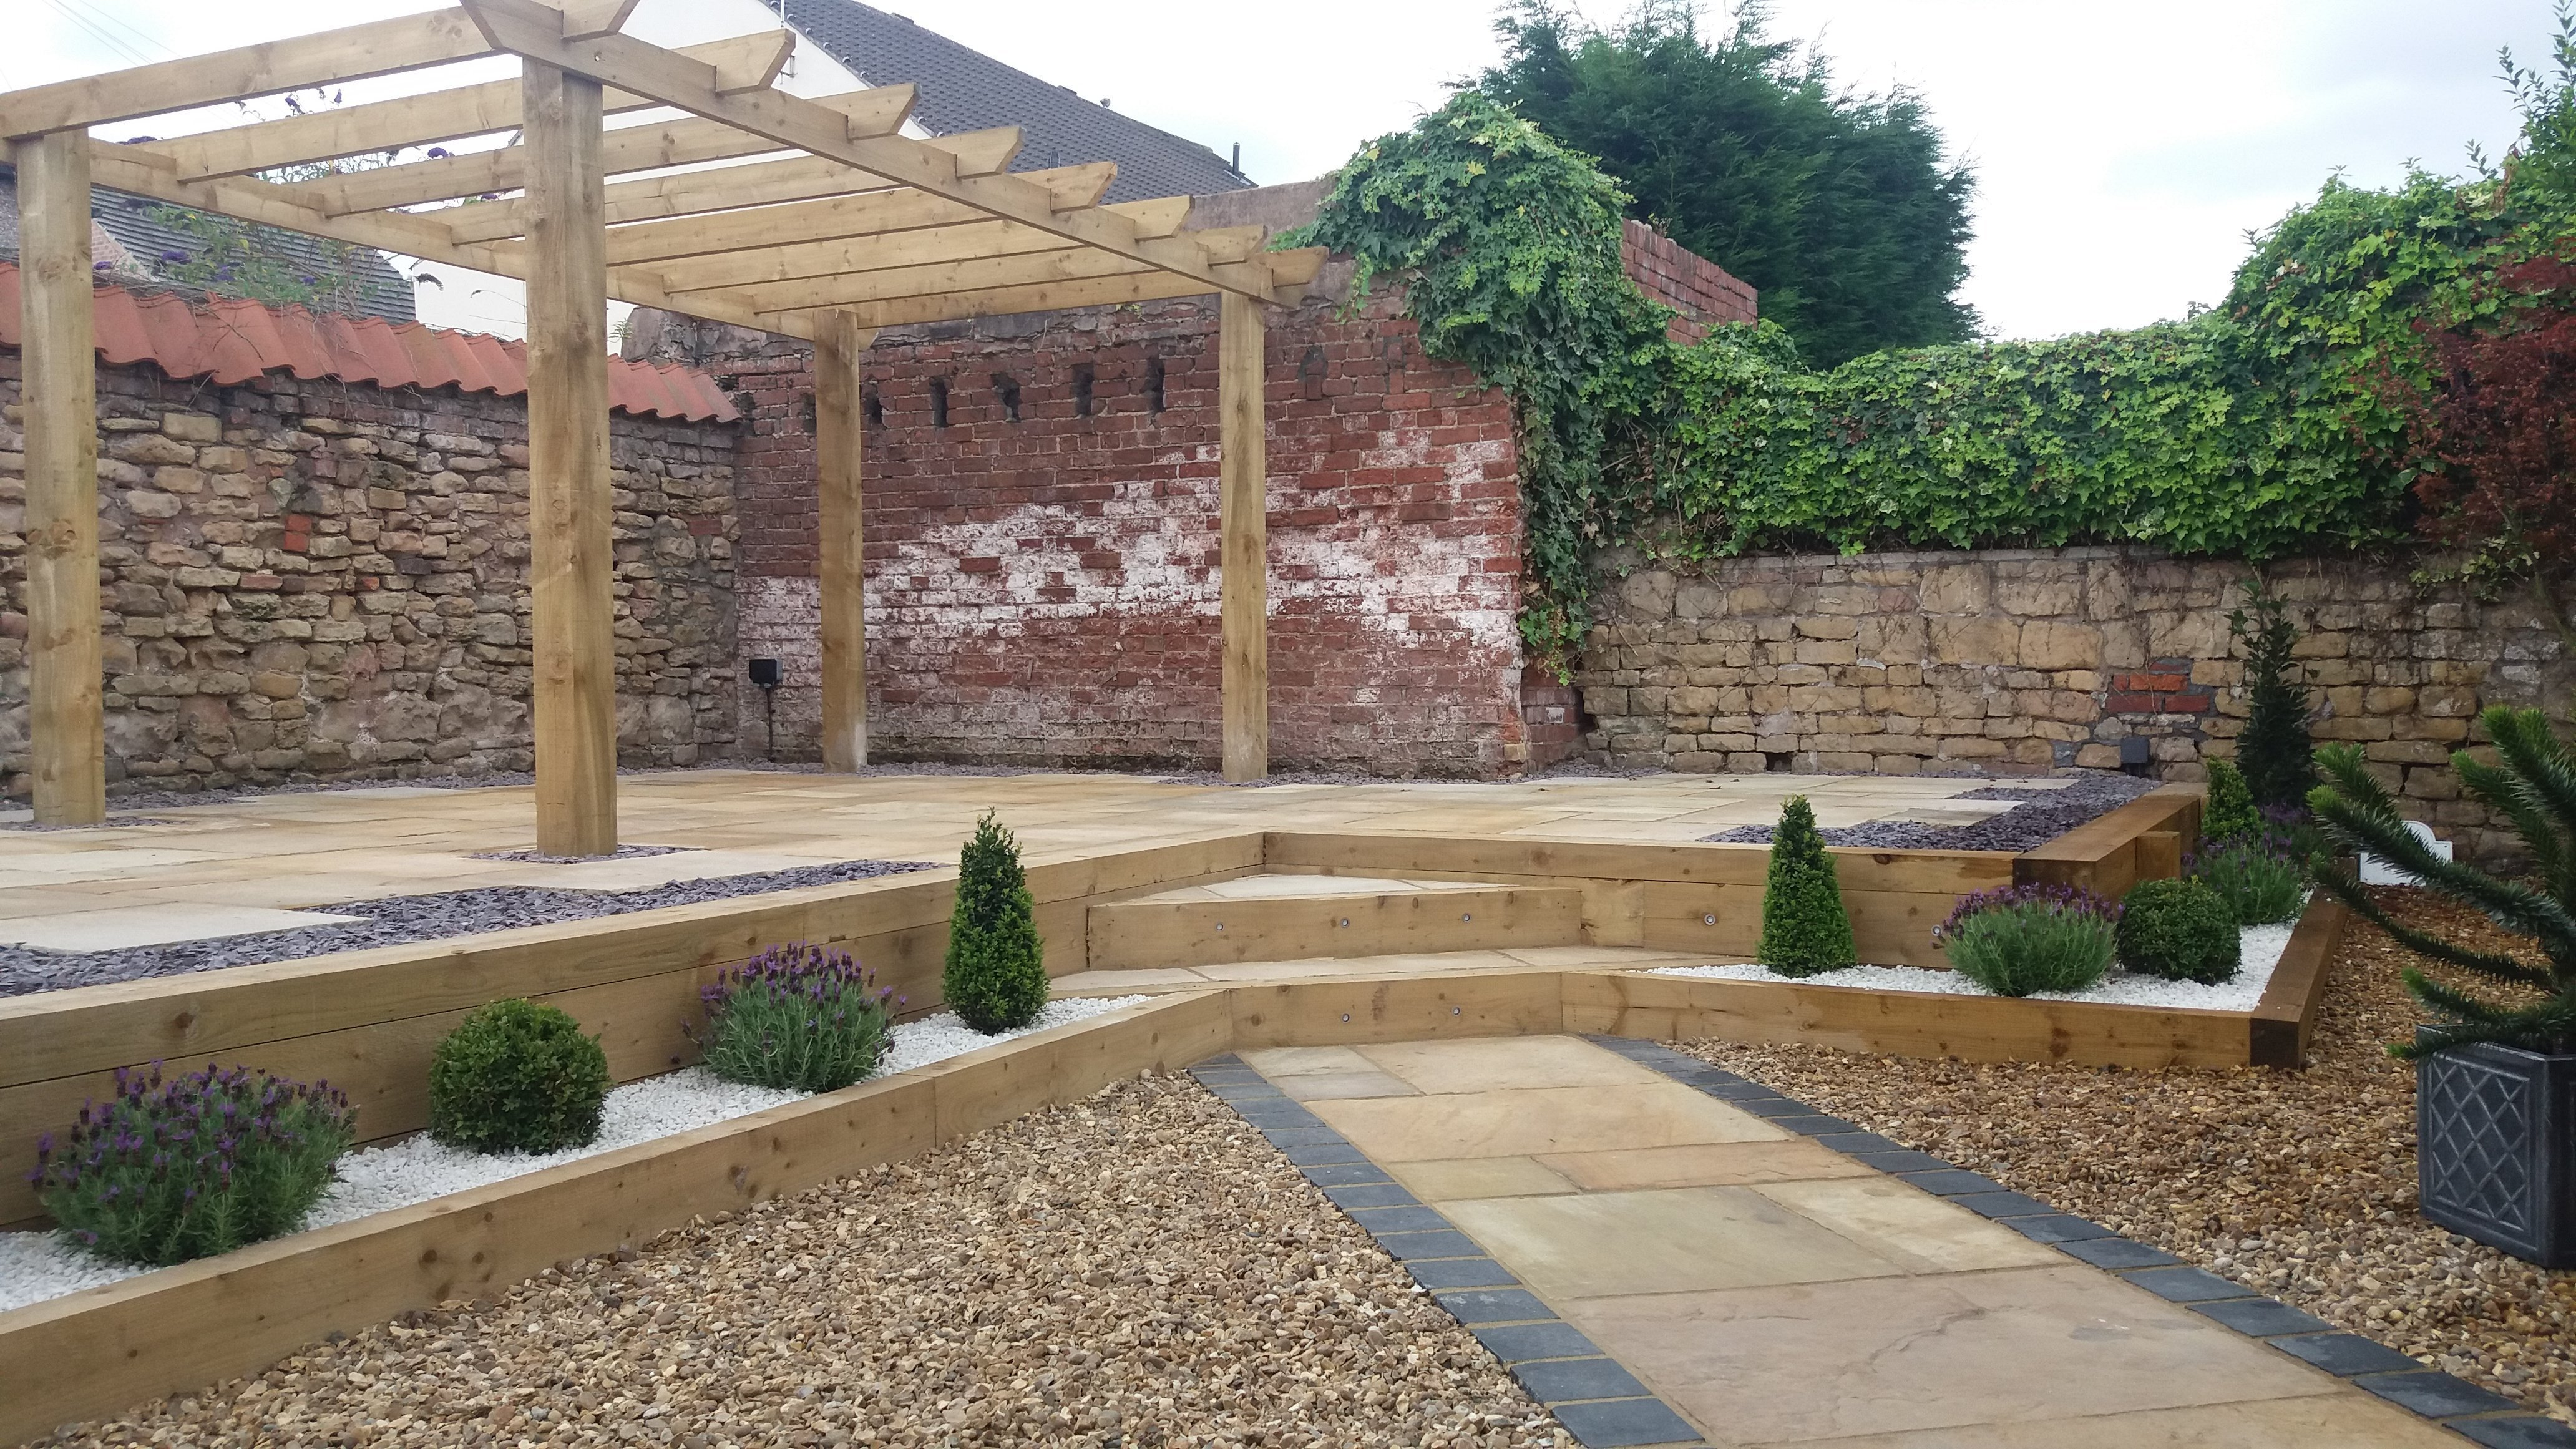 Contact Clowne Landscaping Centre In Chesterfield For